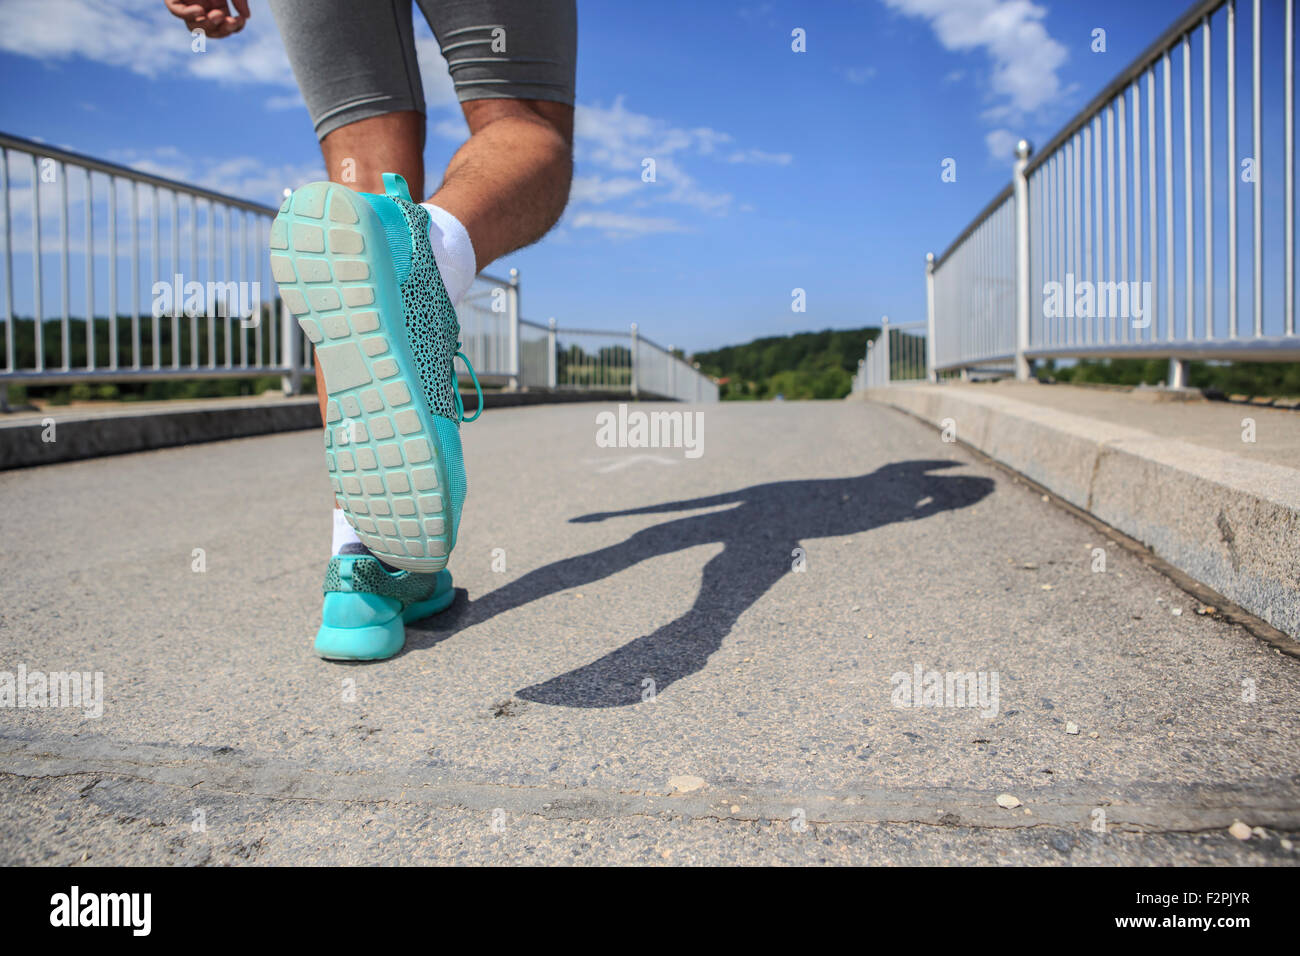 Young man at running exercise, sole Of shoe - Stock Image